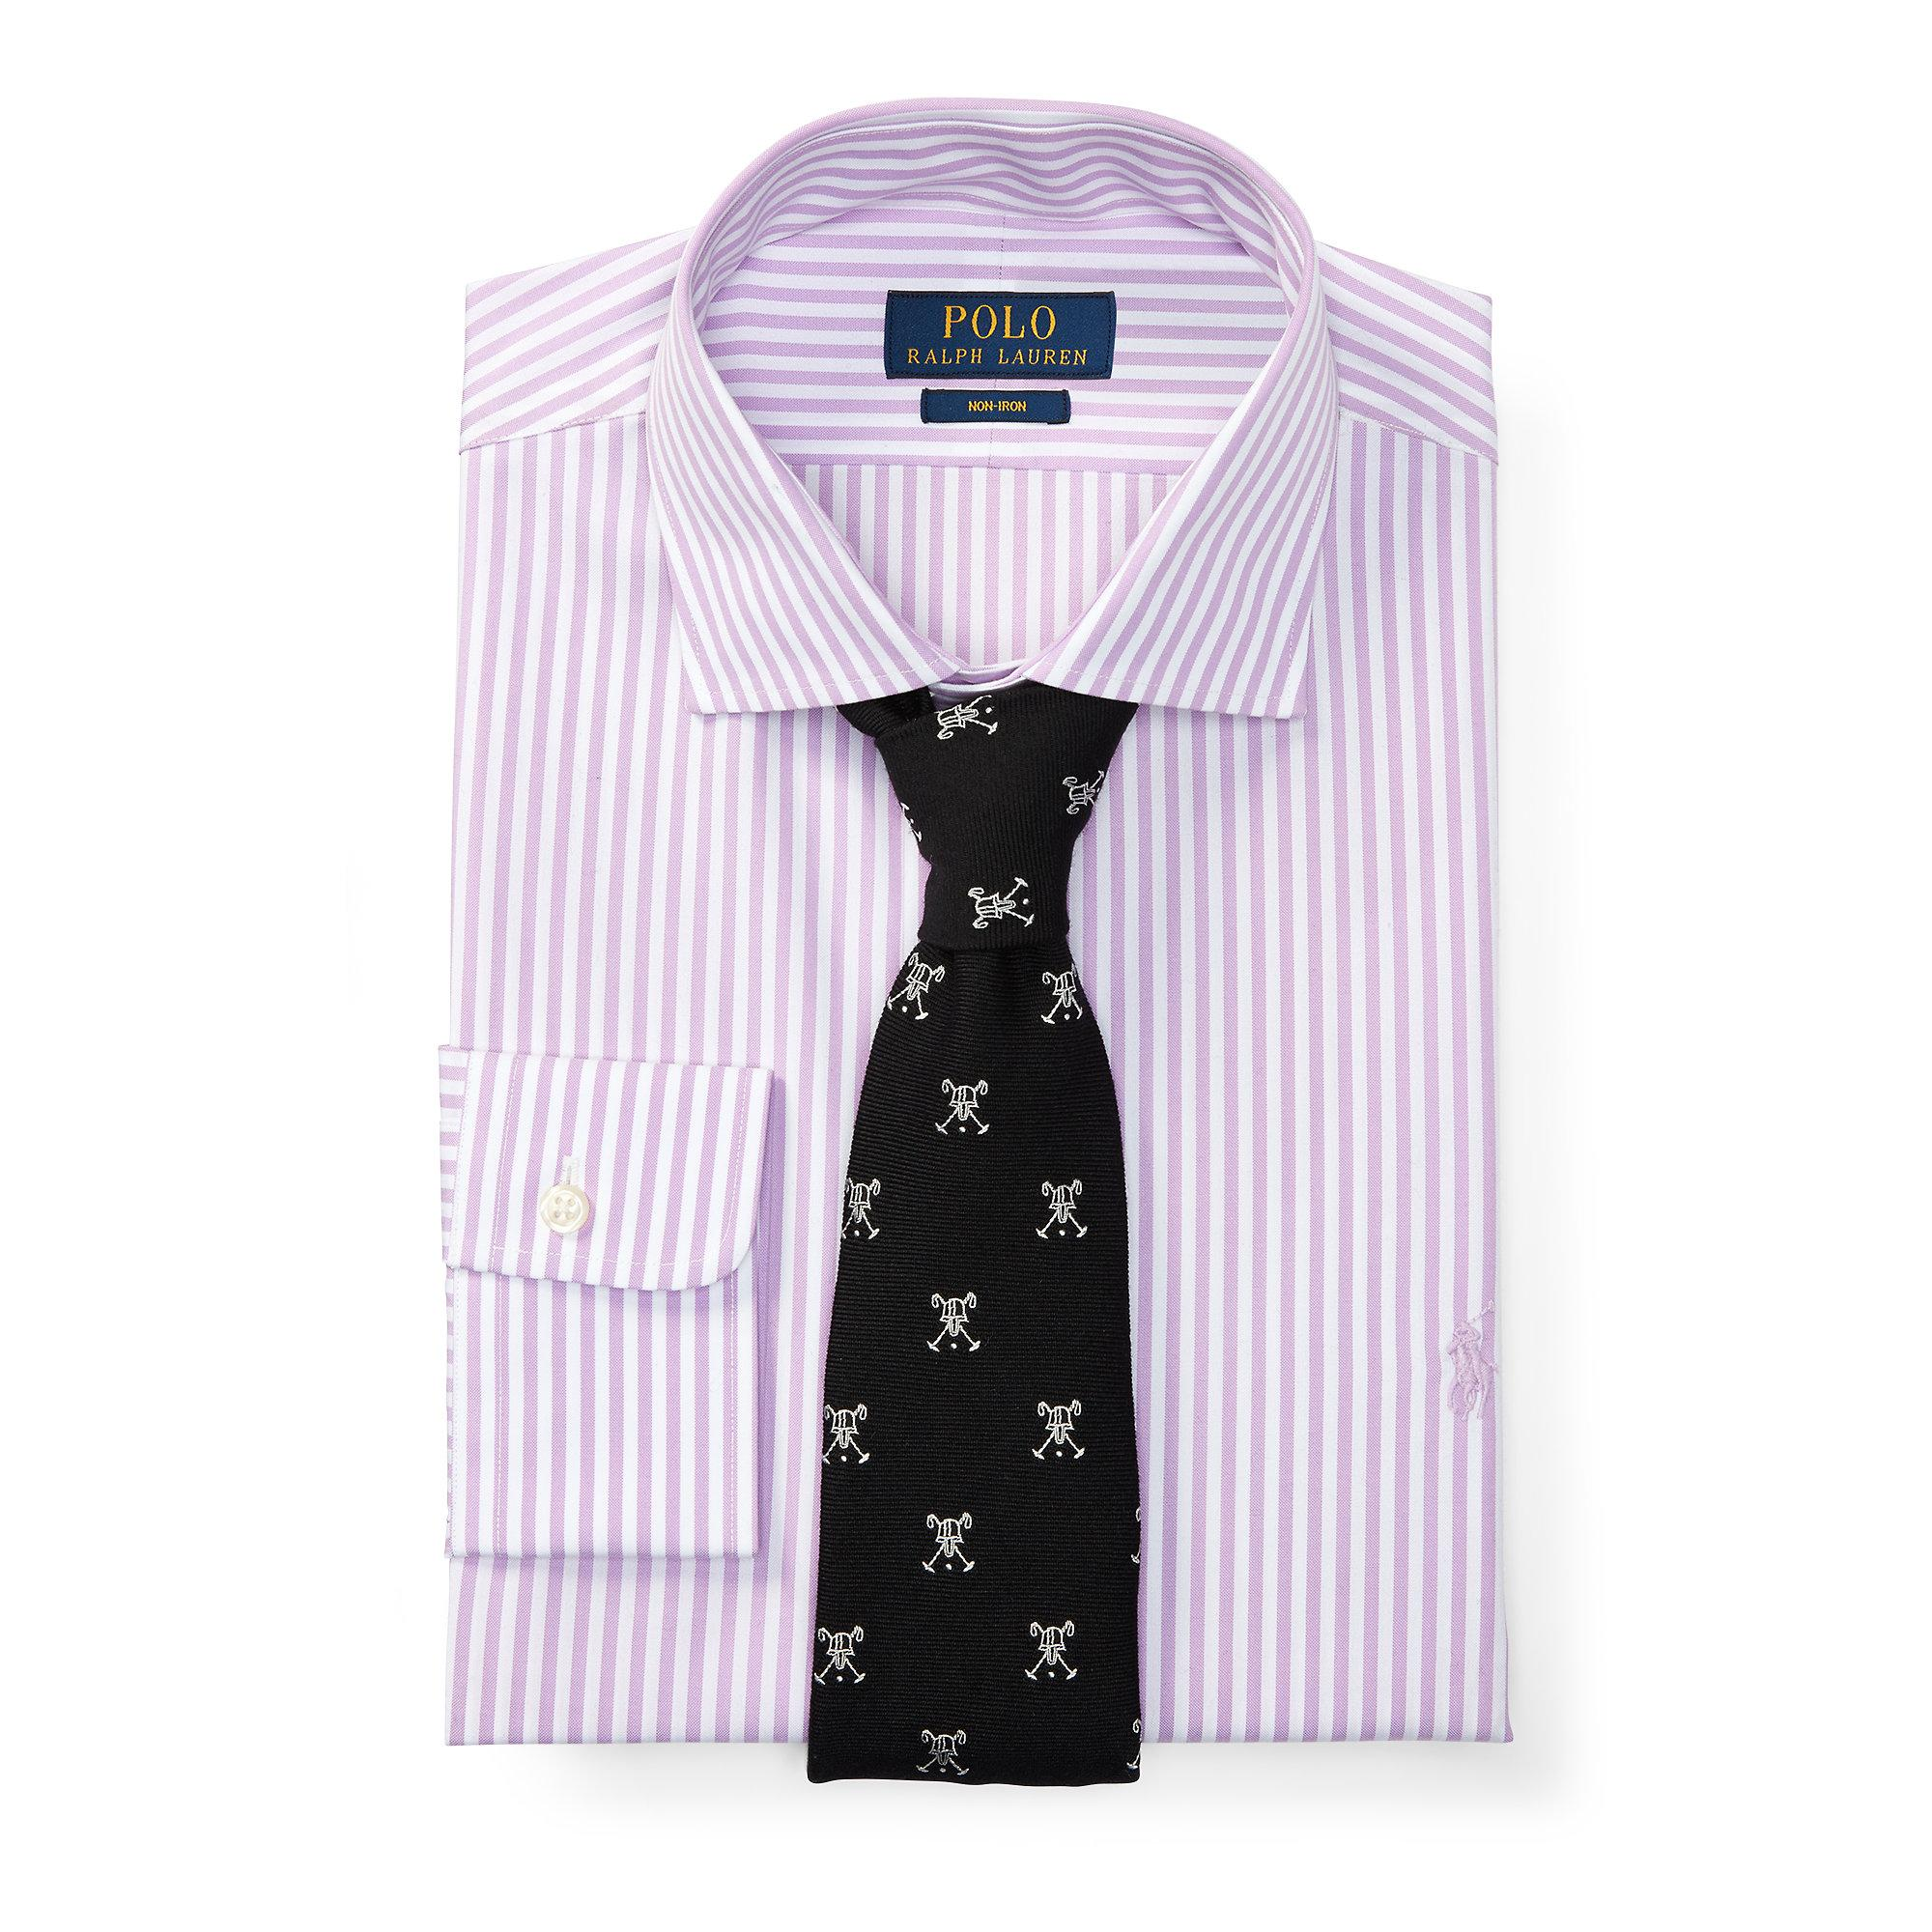 Polo ralph lauren no iron cotton dress shirt in purple for for Mens no iron dress shirts